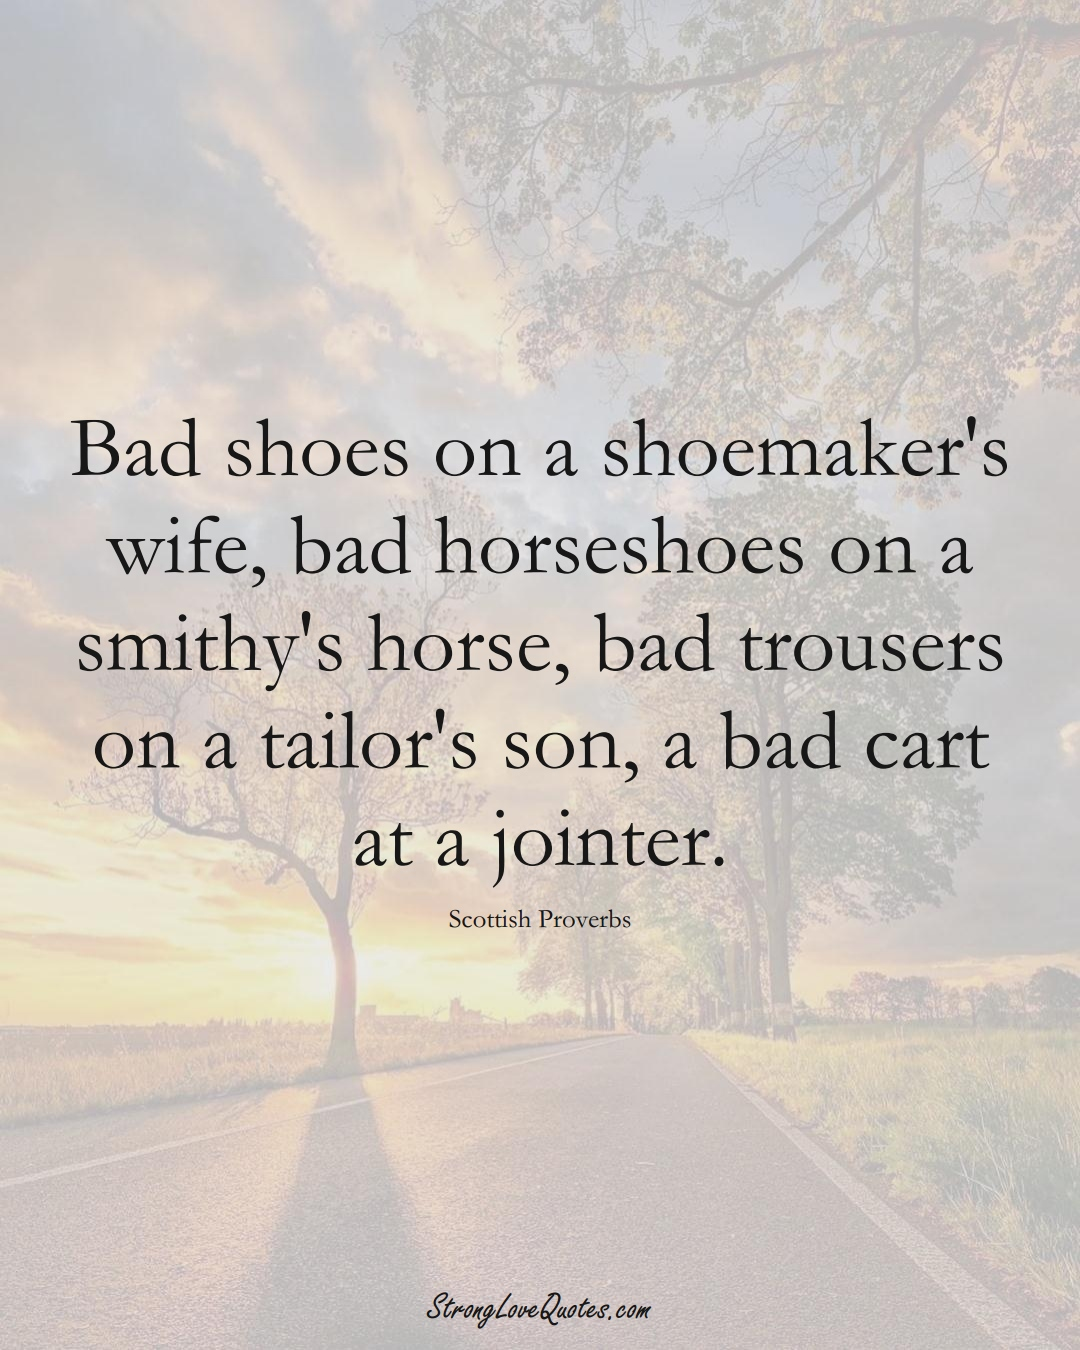 Bad shoes on a shoemaker's wife, bad horseshoes on a smithy's horse, bad trousers on a tailor's son, a bad cart at a jointer. (Scottish Sayings);  #EuropeanSayings